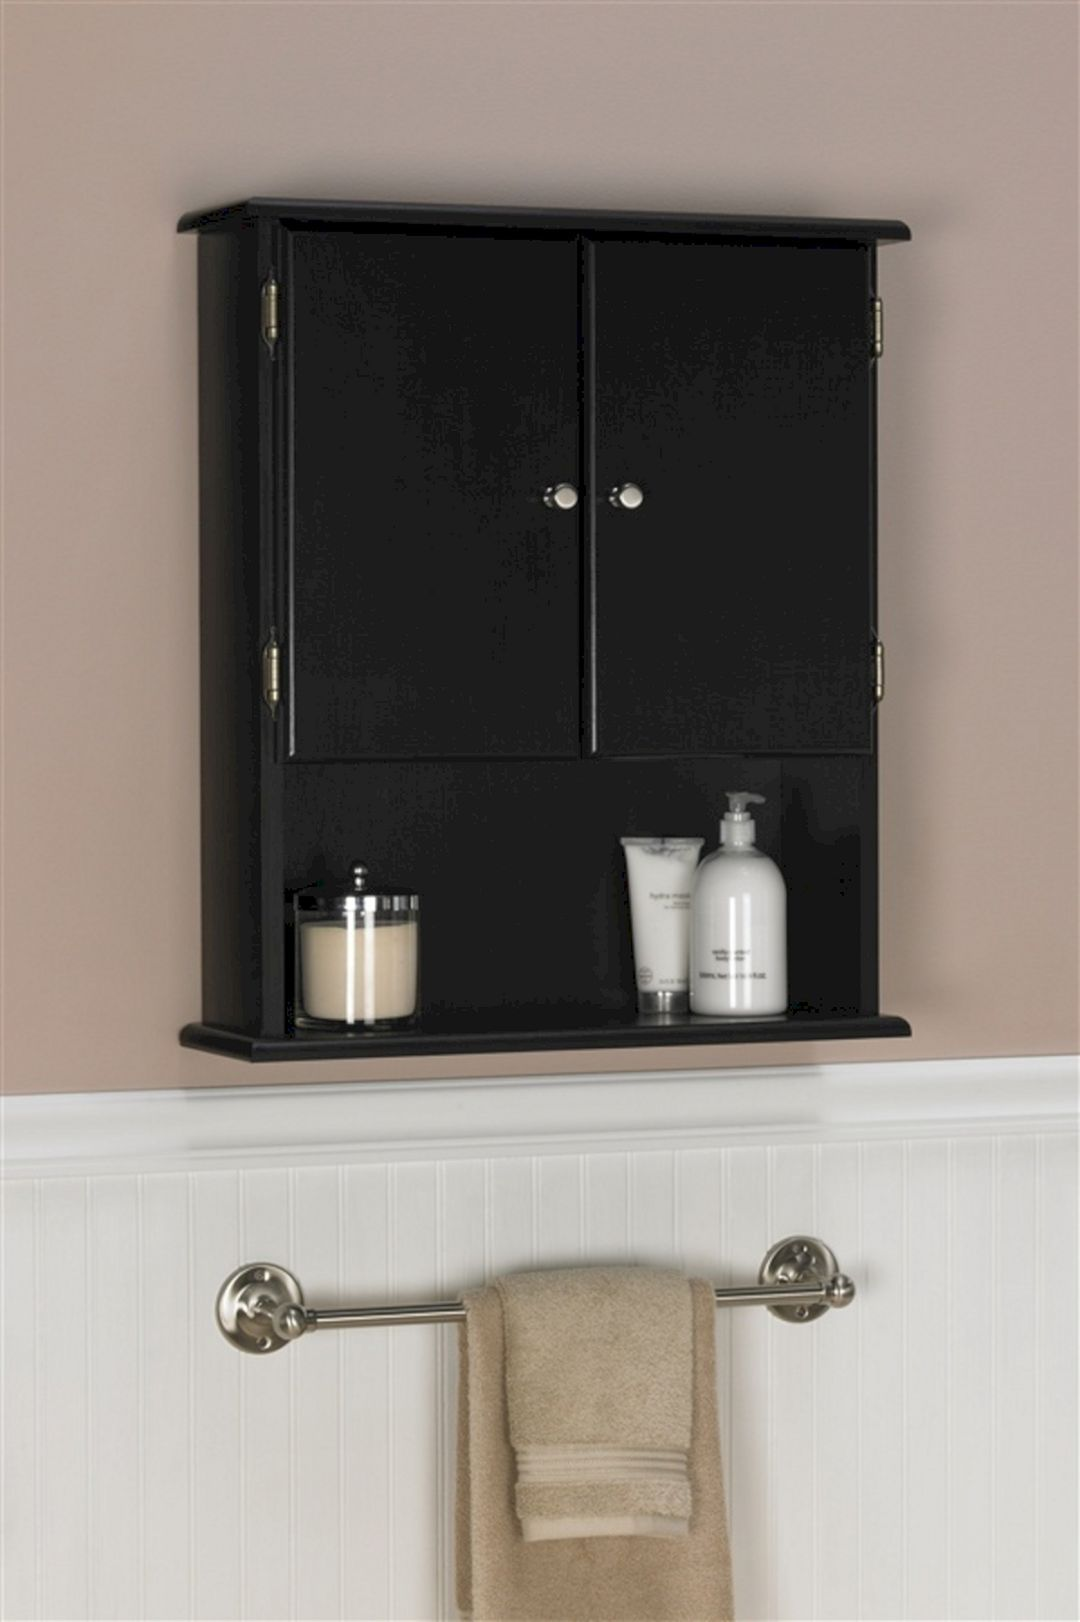 Next Designing A Smaller Bathroom For Kids Smart Details Subsequent To This Pullou Bathroom Wall Cabinets Wall Storage Cabinets Bathroom Wall Storage Cabinets